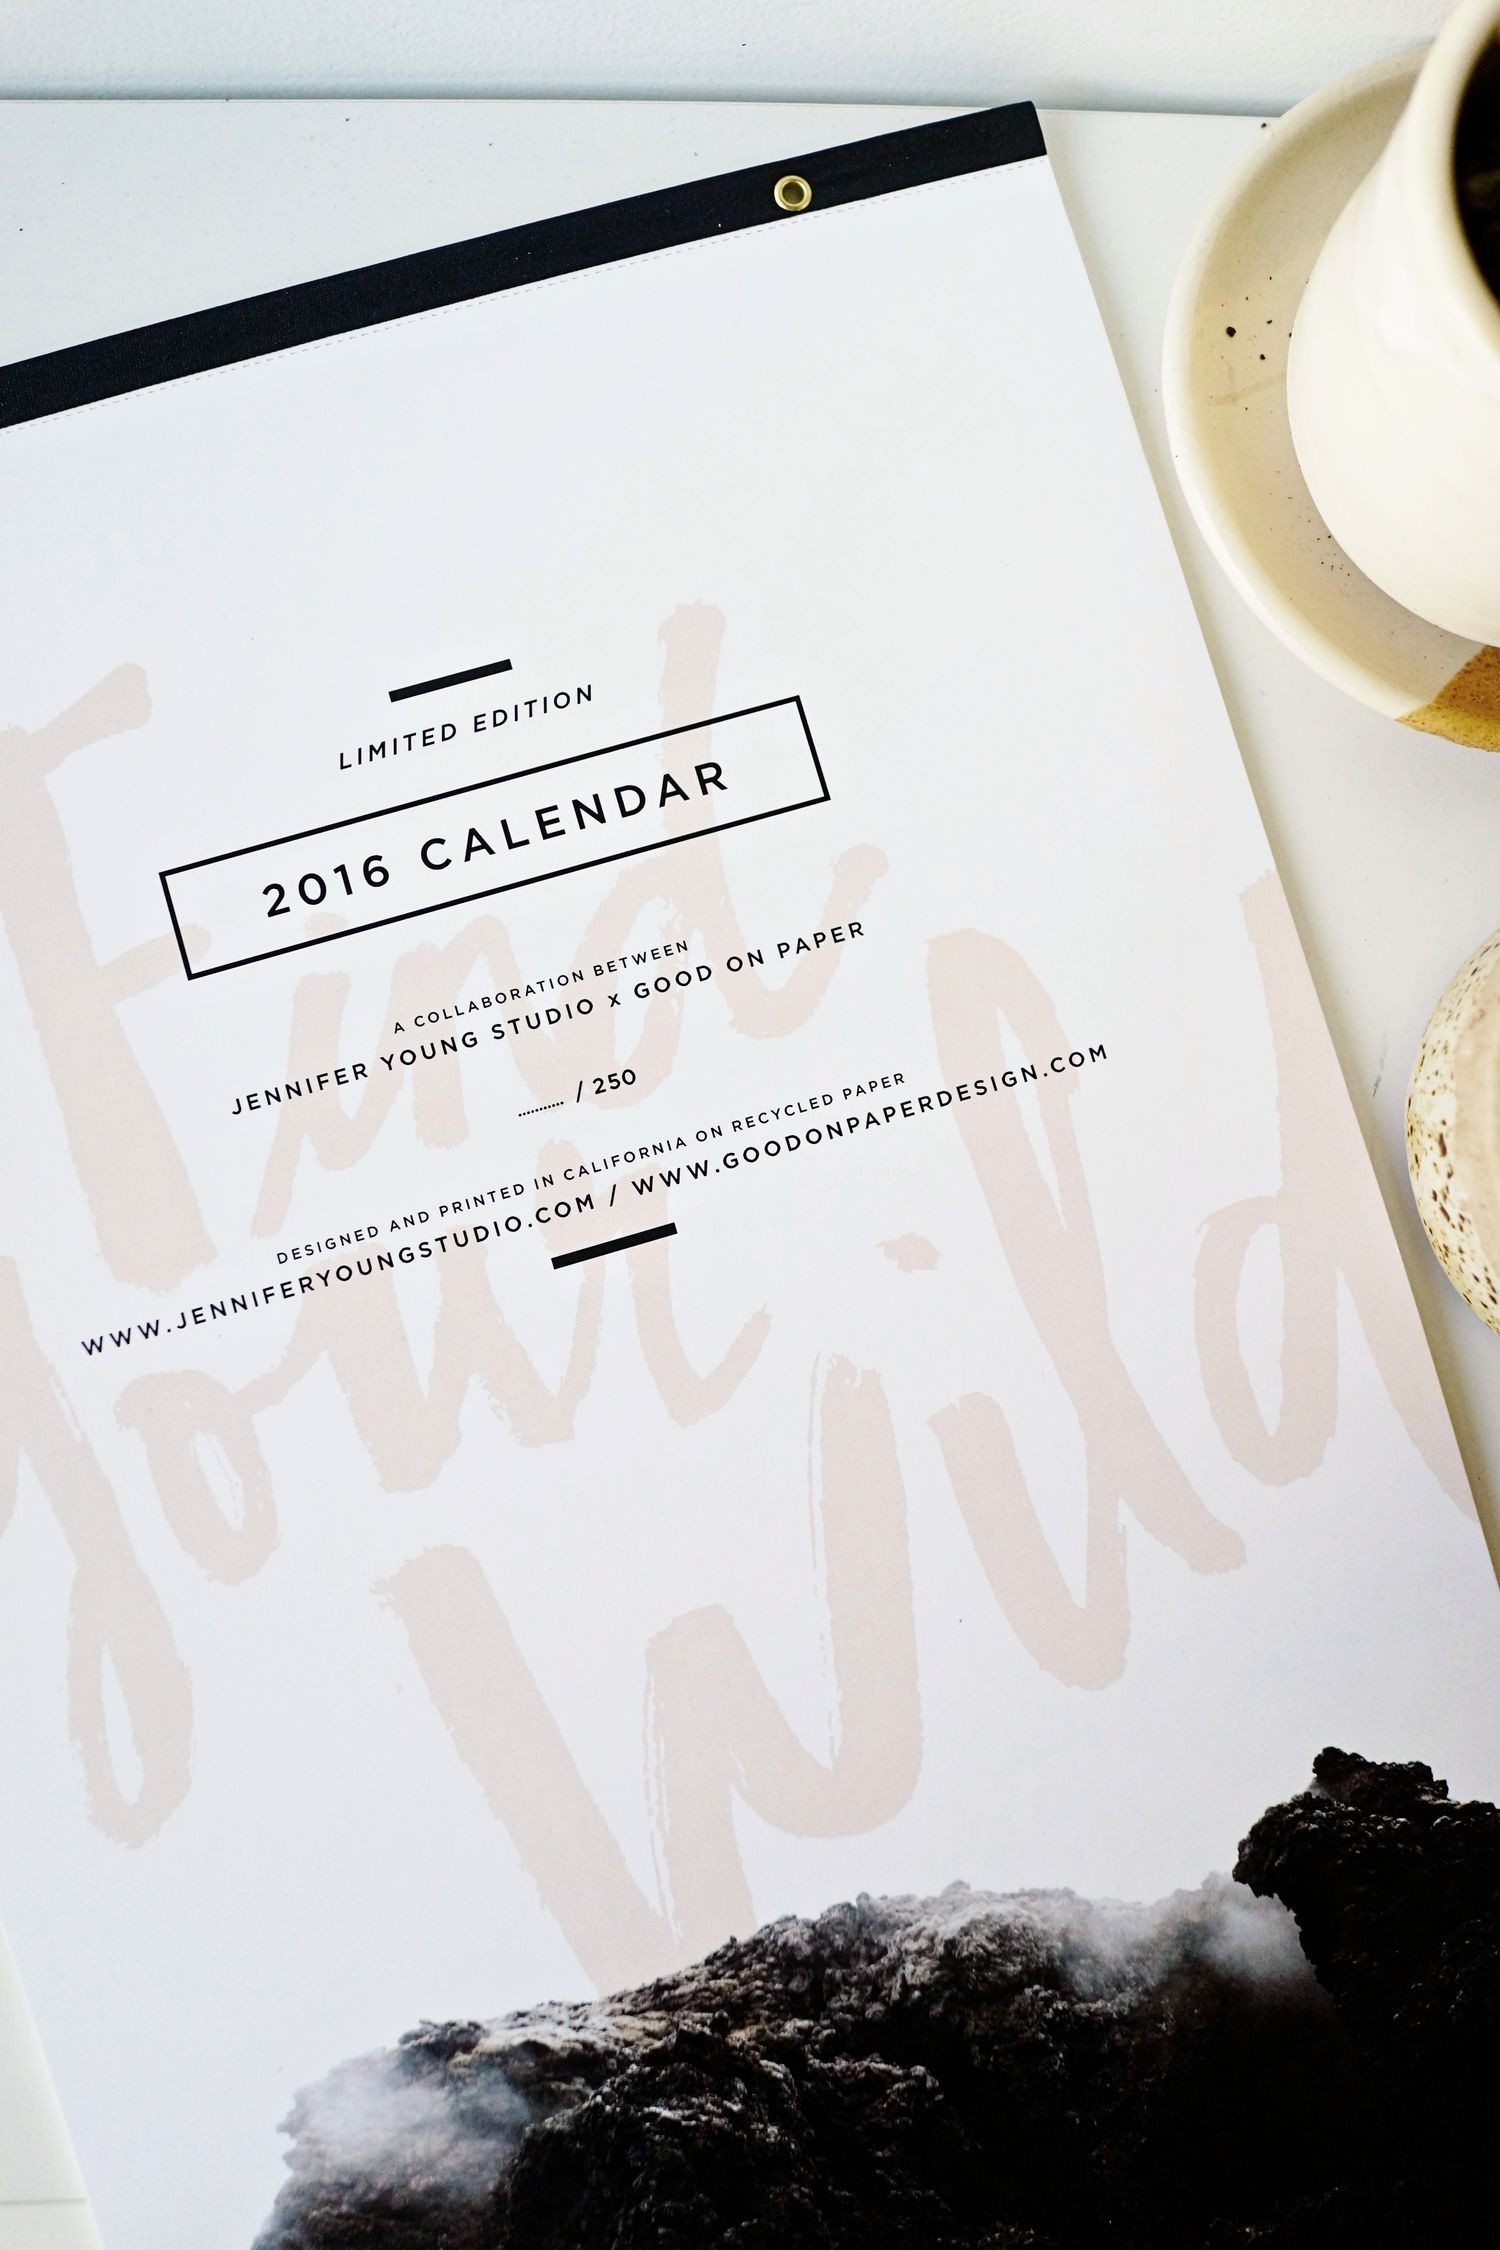 2016 Calendar by Jennifer Young x Good on Paper